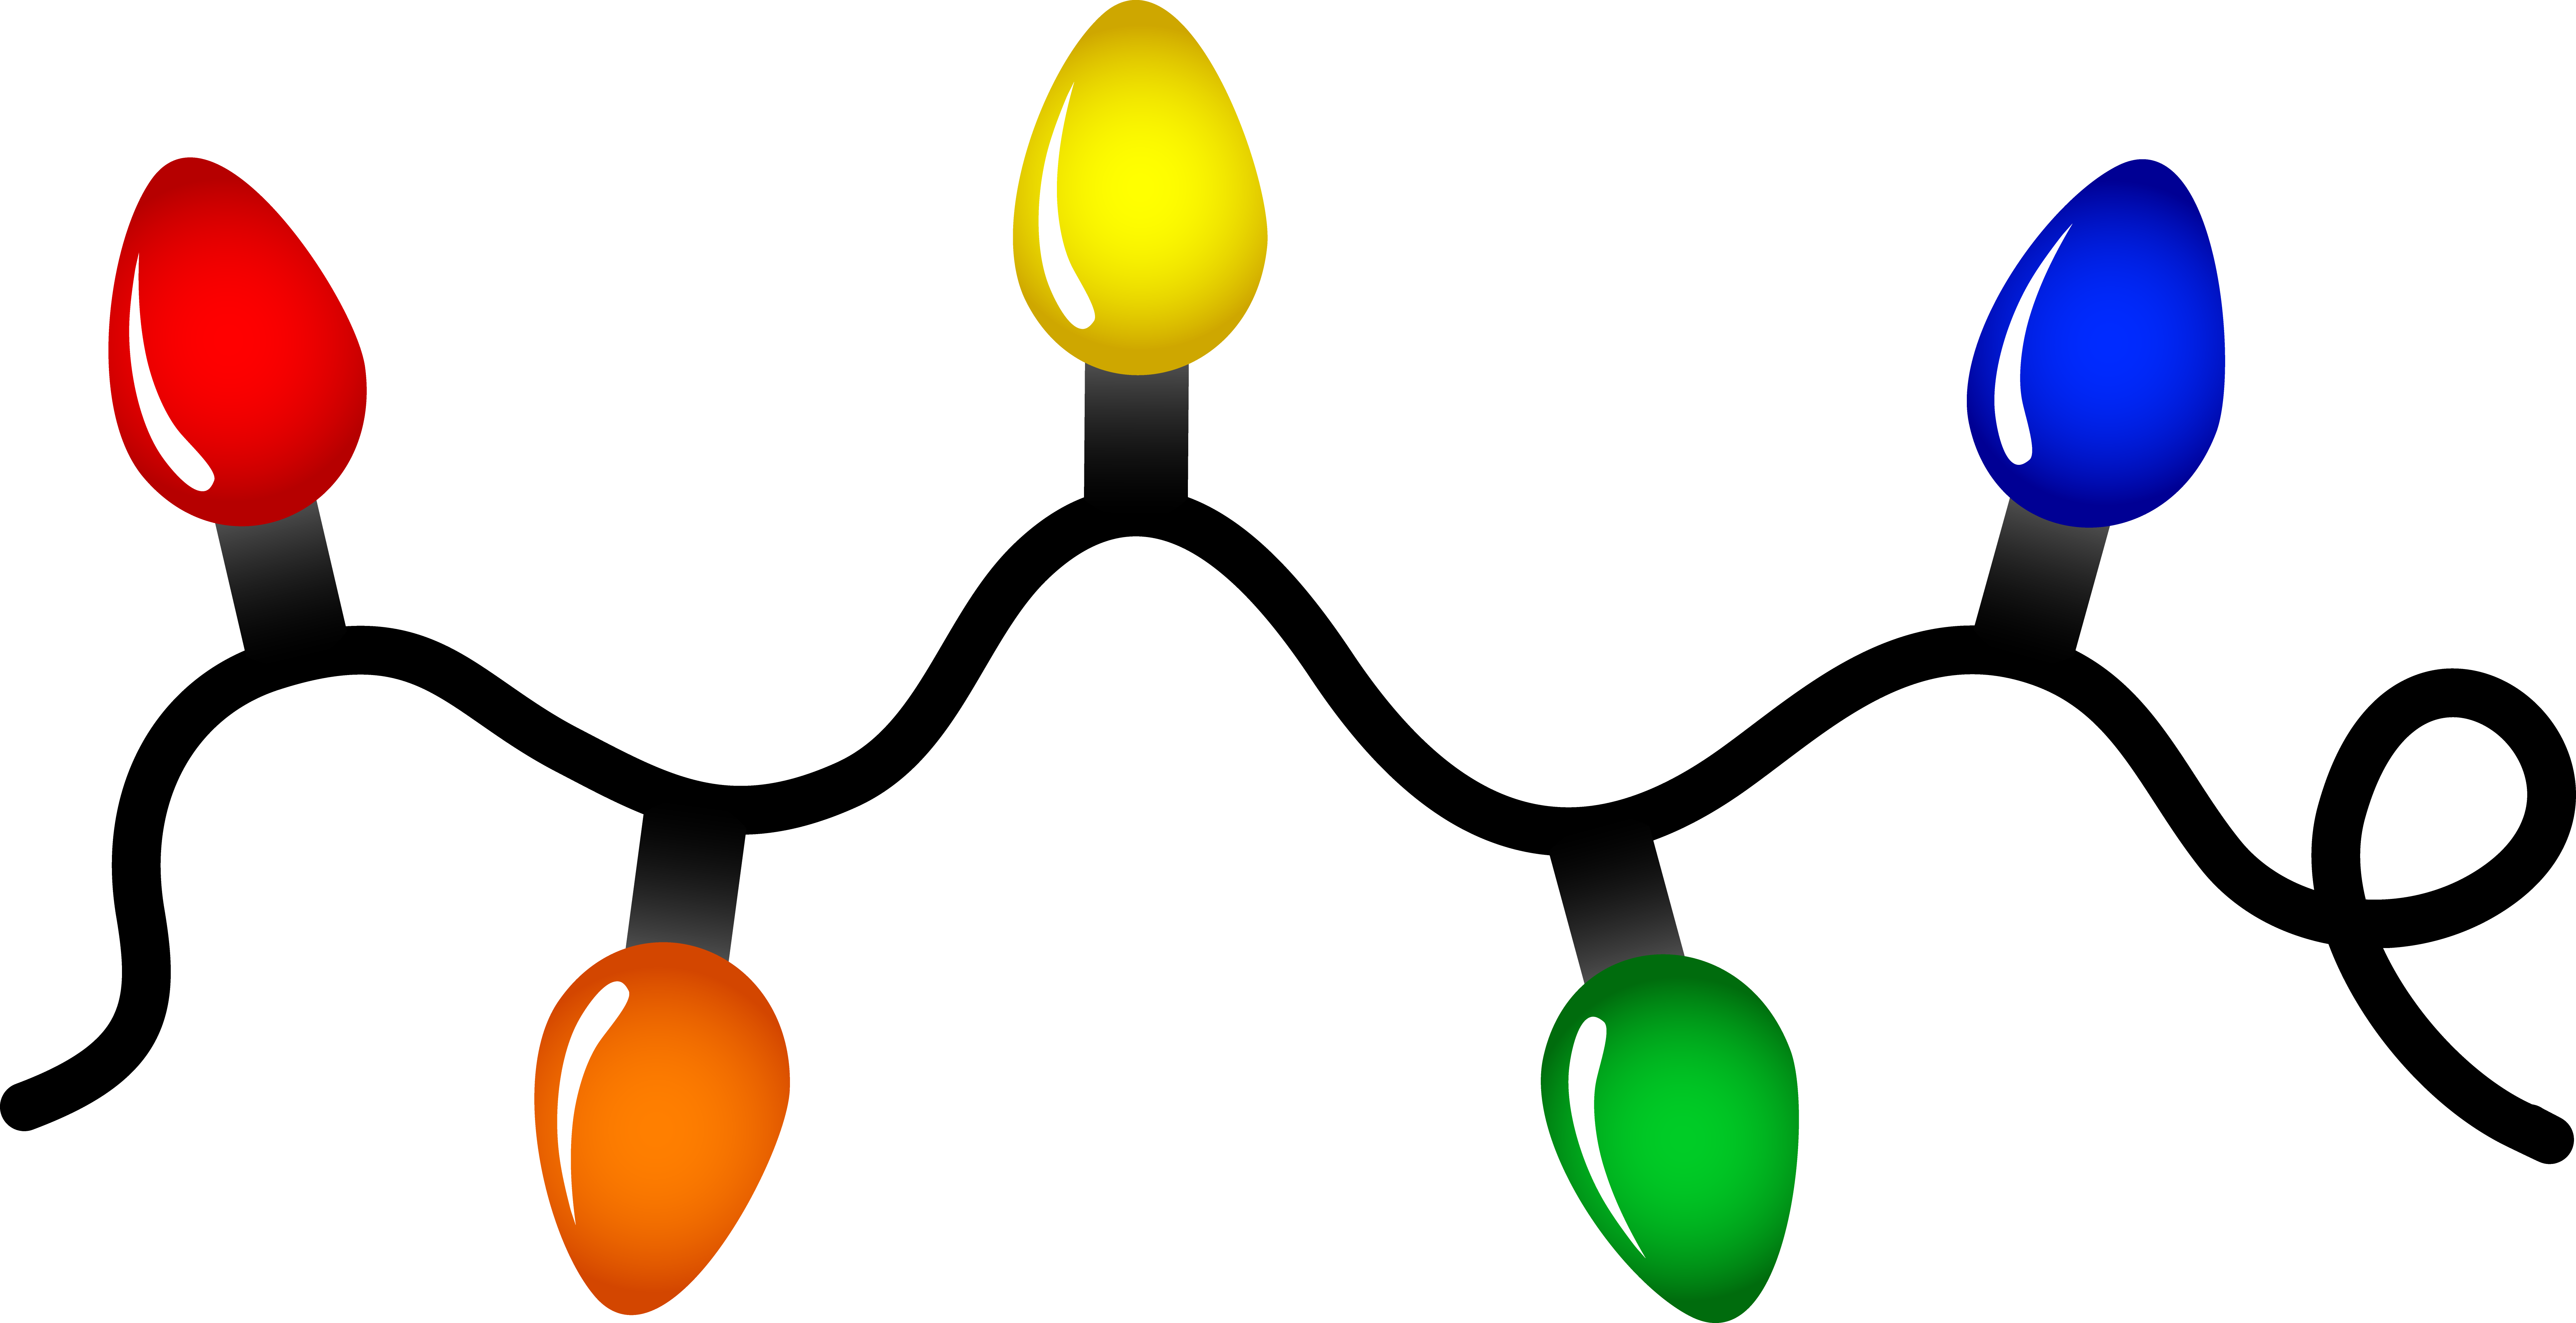 Christmas lights clipart free clipart images